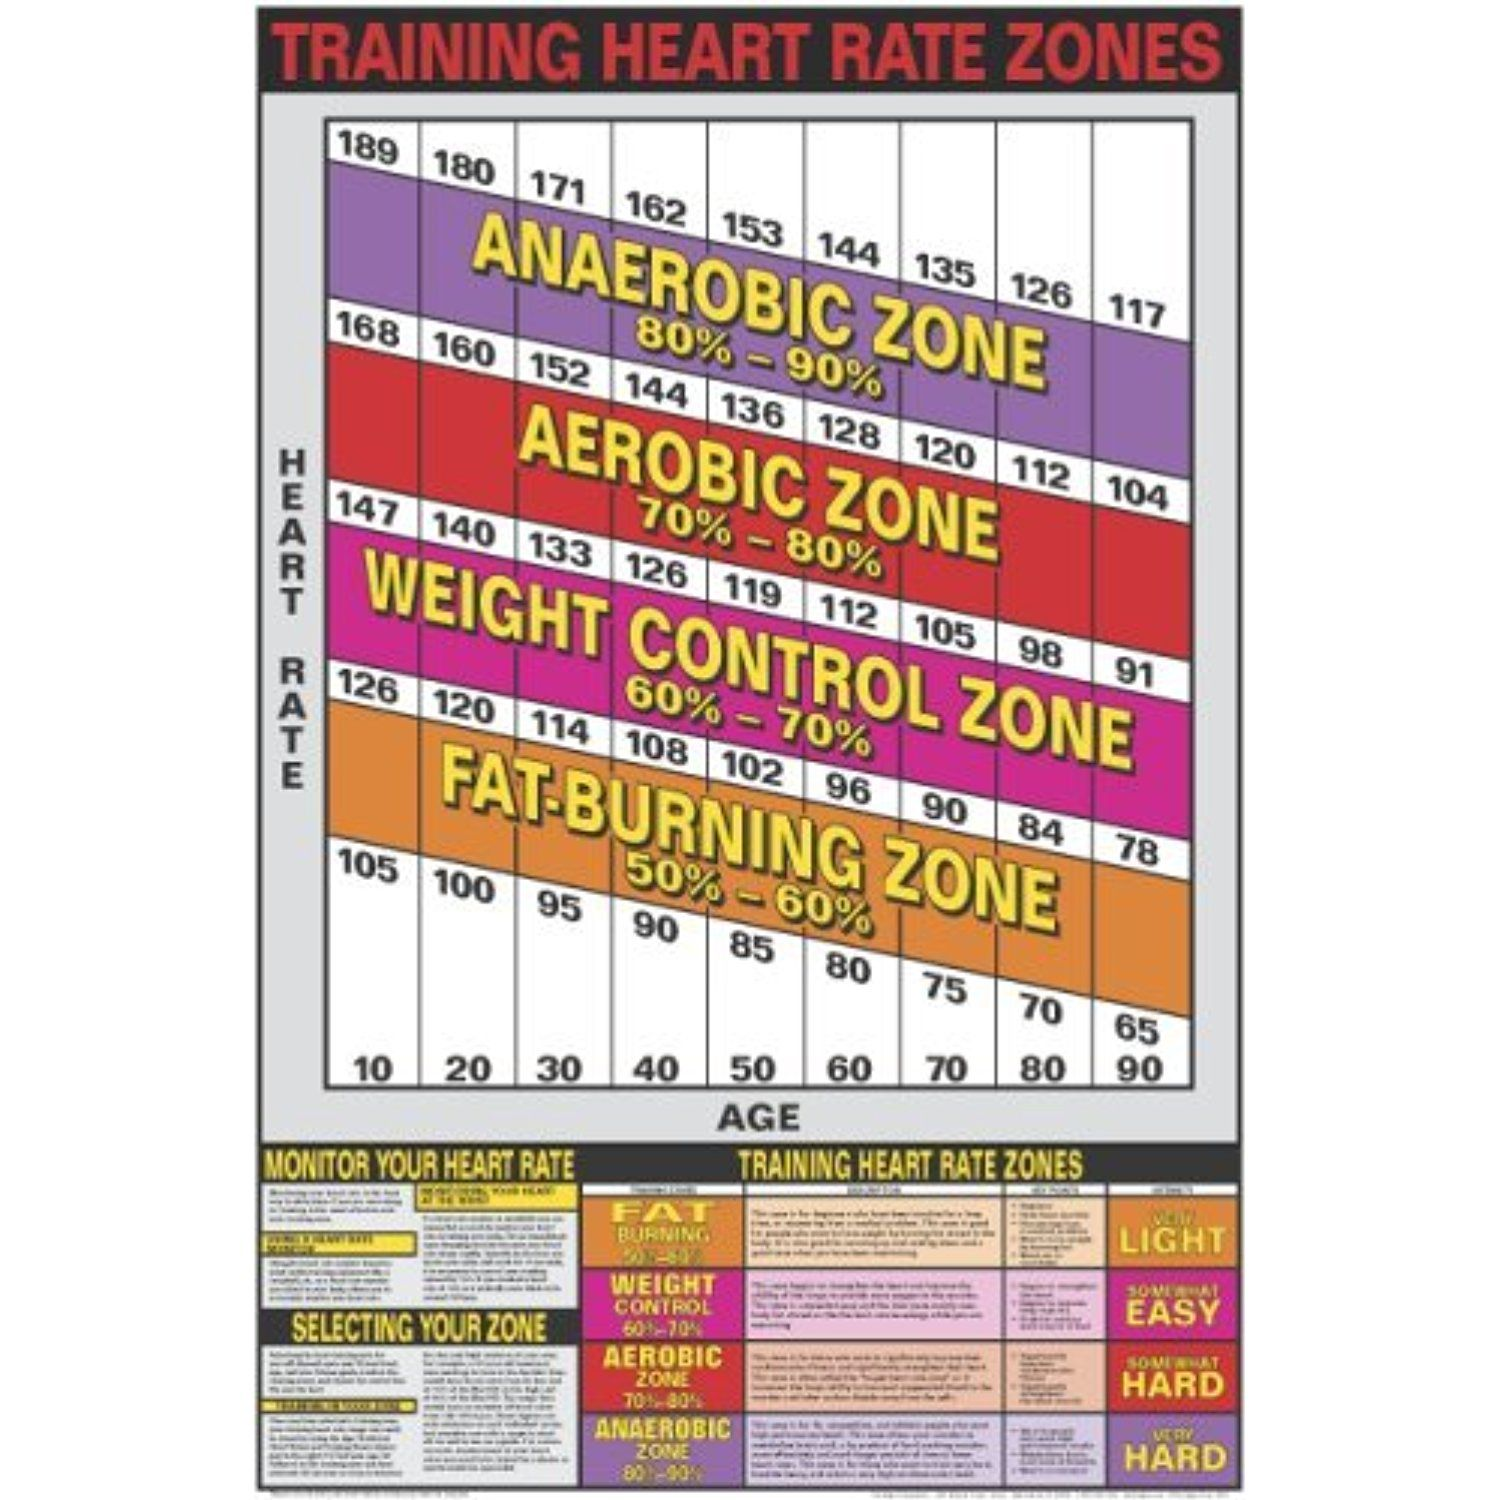 Heart rate zones 24 x 36 laminated chart click image to heart rate zones 24 x 36 laminated chart click image to geenschuldenfo Image collections